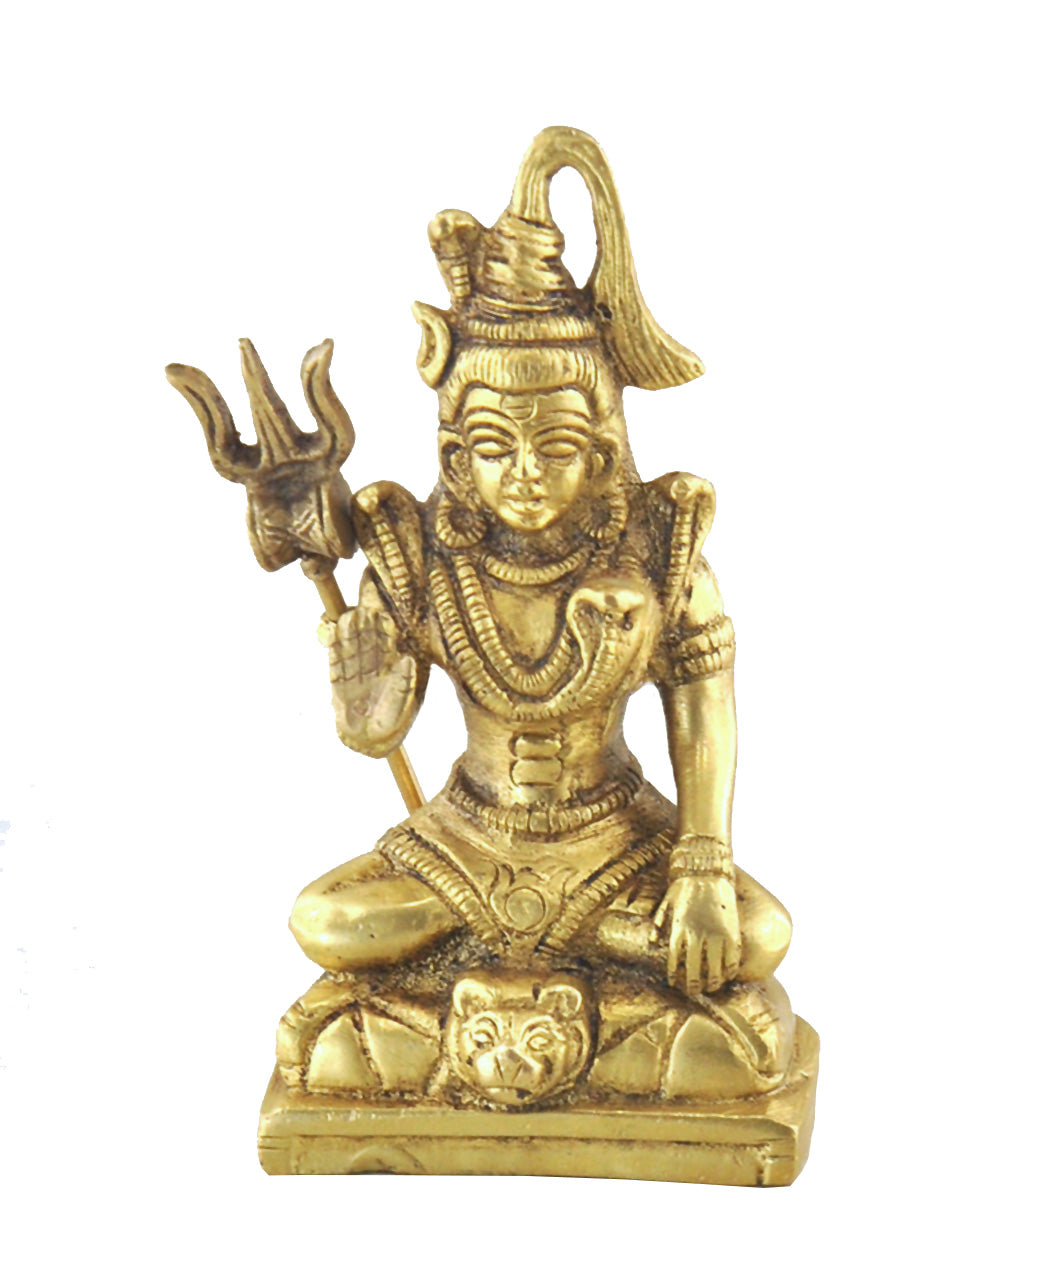 All Powerful Lord Shiva in Meditation Statue with Trident